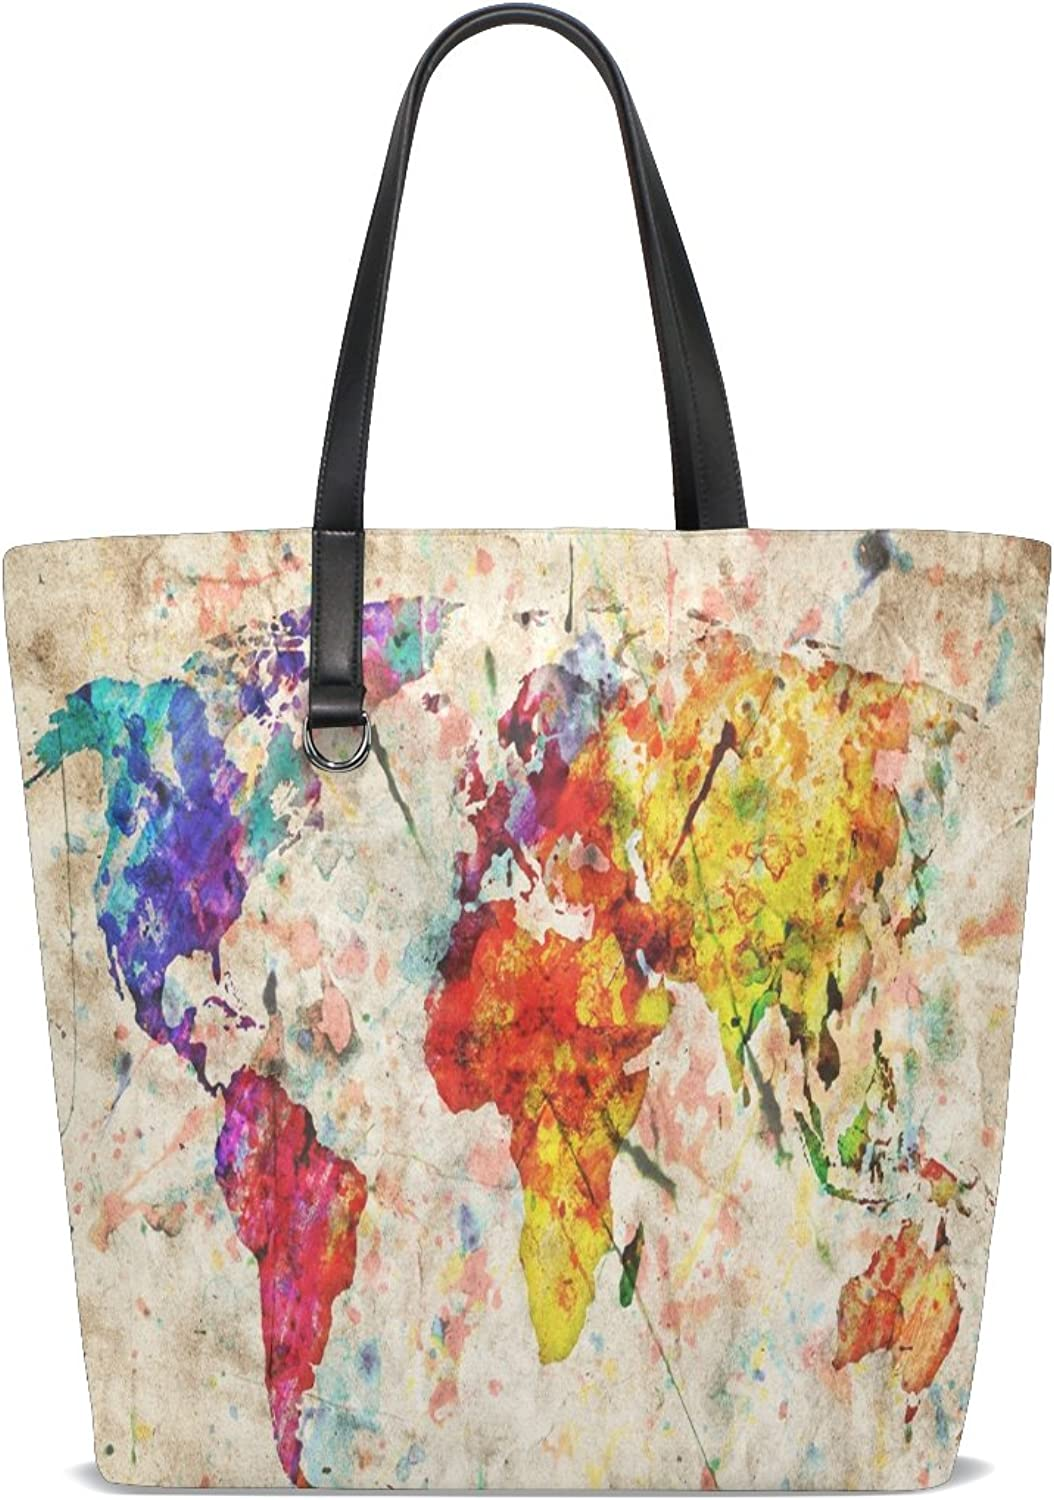 Women's Tote,Cicily Vintage World Map colorful Paint Watercolor Stylish Lady Handbags Shoulder Bags for Teen Girls Portable bags for Shopping Washable